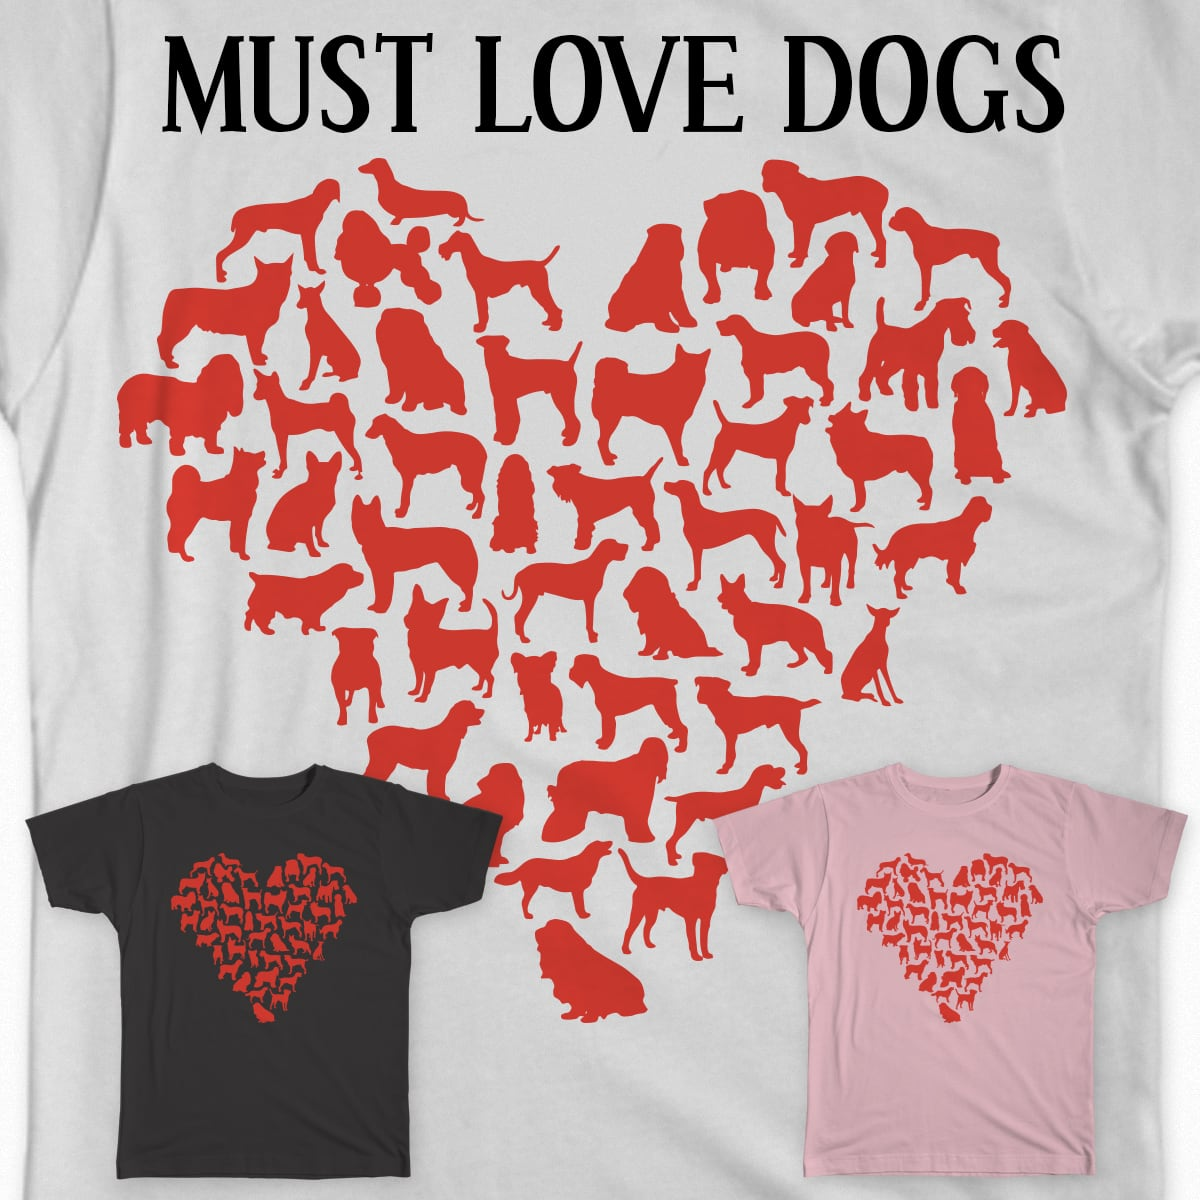 Must love dogs by sregorcinimod on Threadless